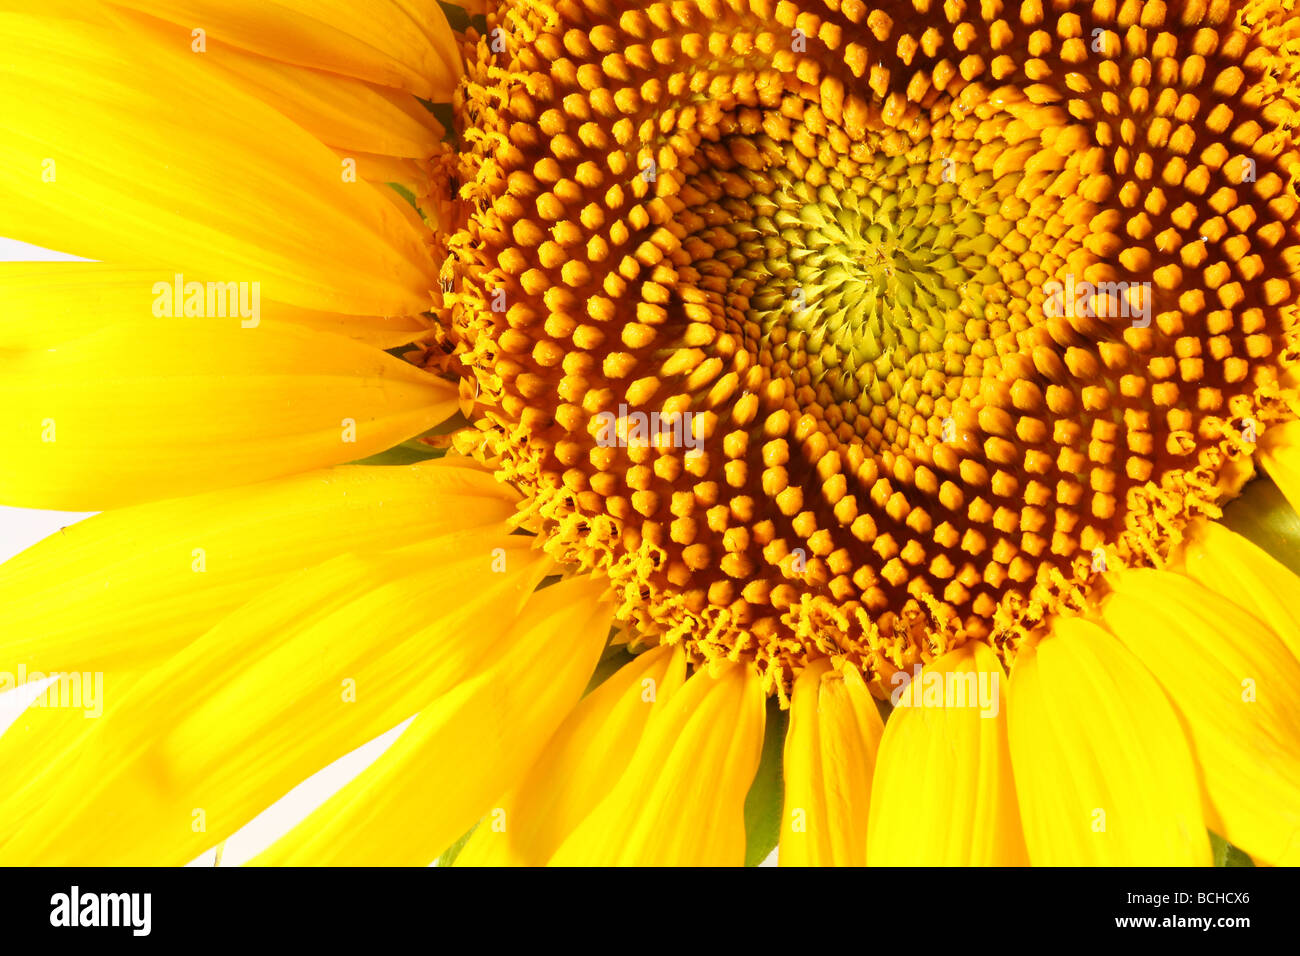 stamens in the form of heart on a sunflower - Stock Image